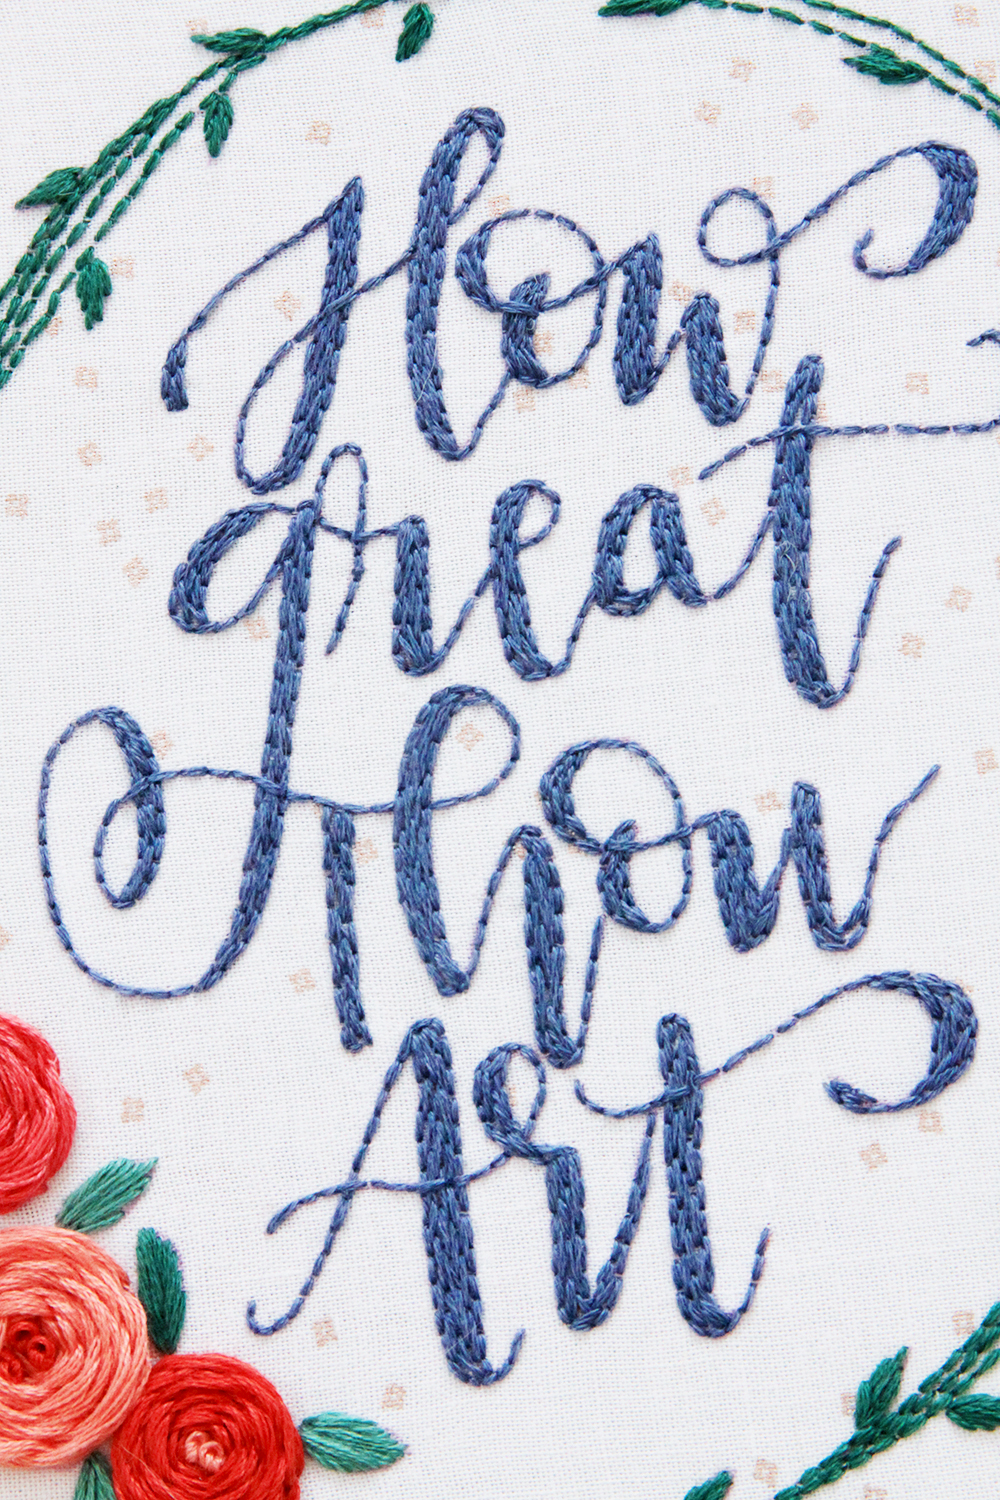 Embroidered Back Stitch Lettering